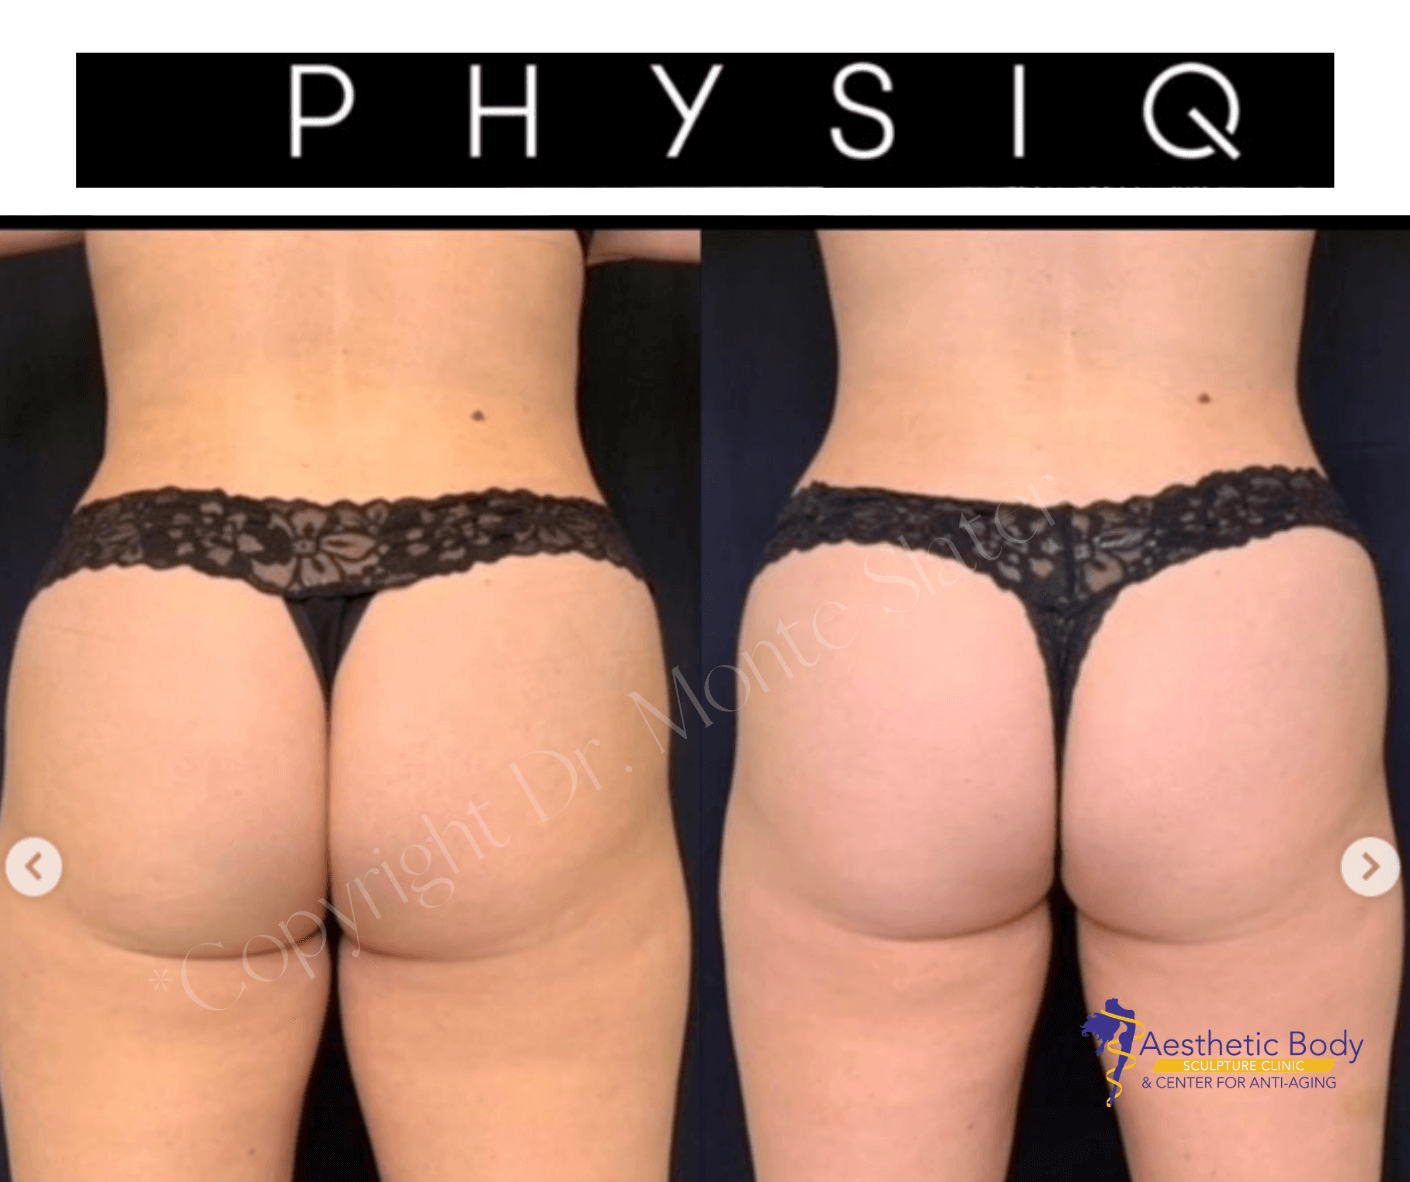 *Real Patient Before and after 3 PHYSIQ Treatments